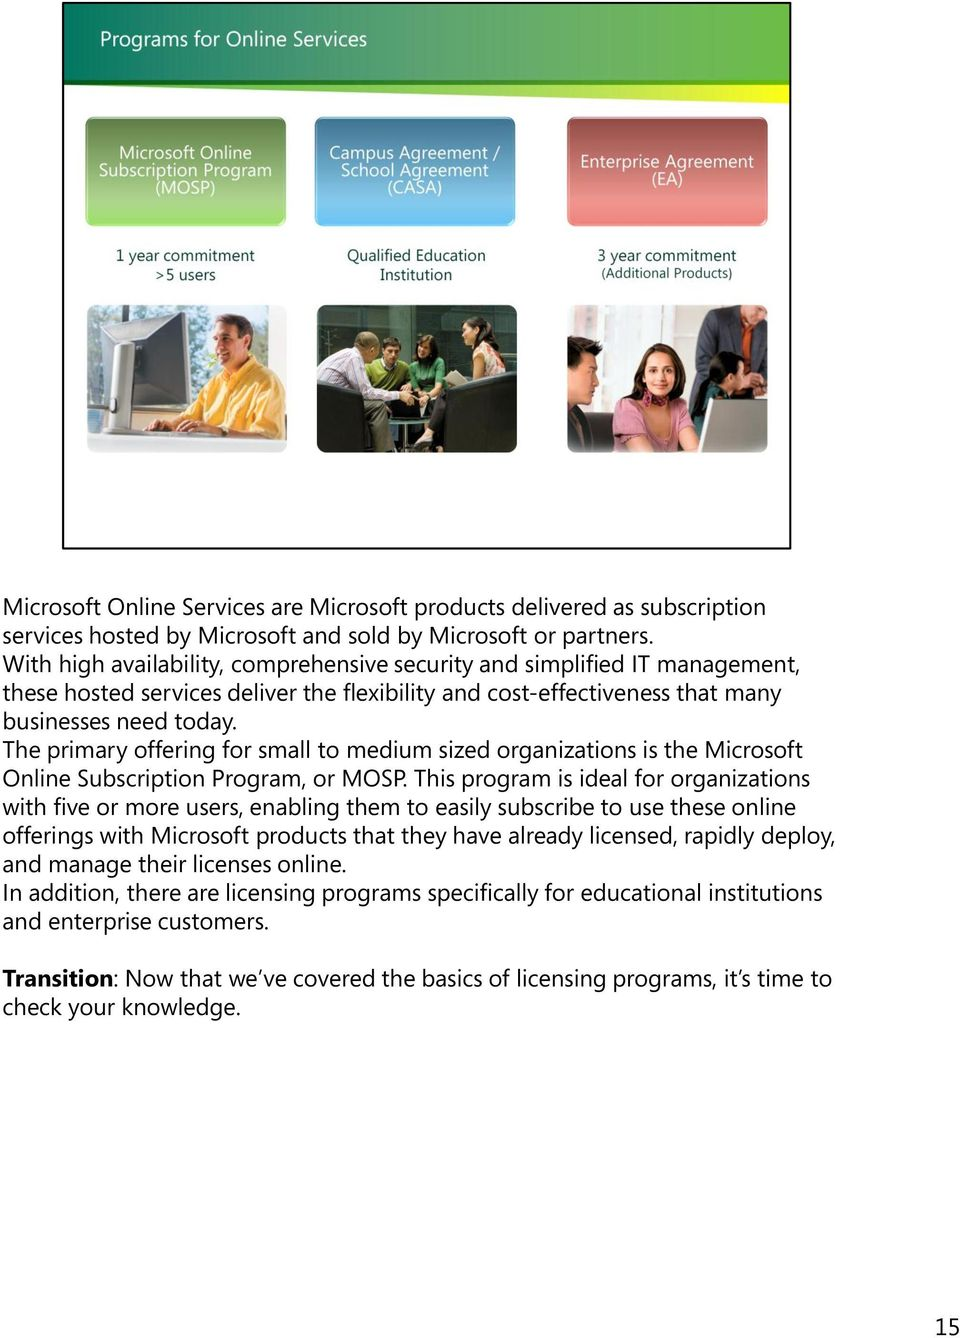 The primary offering for small to medium sized organizations is the Microsoft Online Subscription Program, or MOSP.